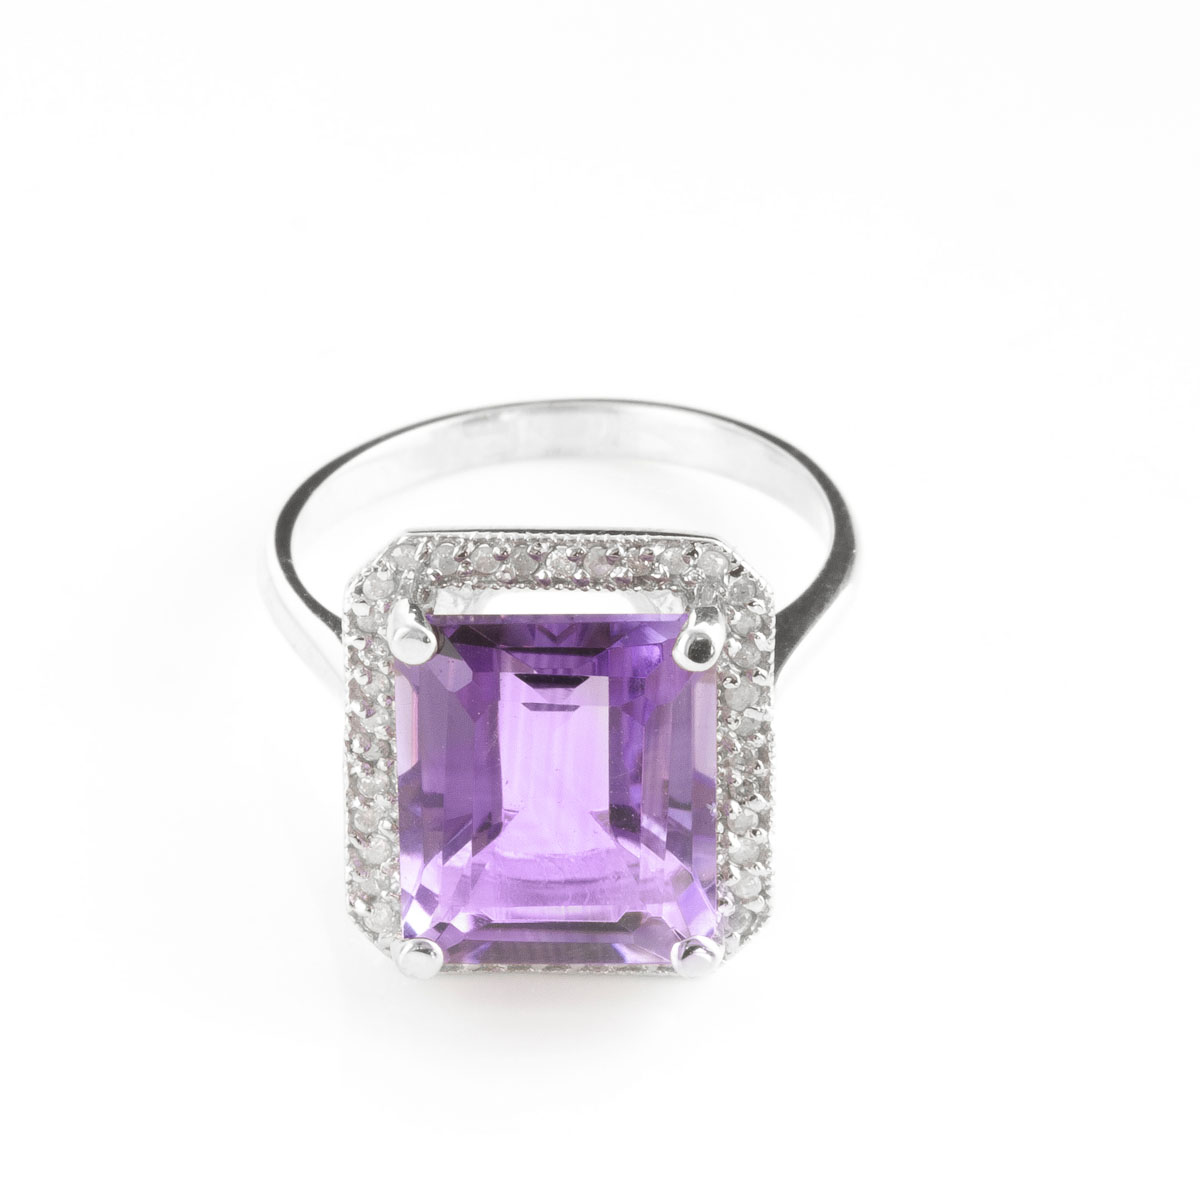 Amethyst Halo Ring 5.8 ctw in 18ct White Gold